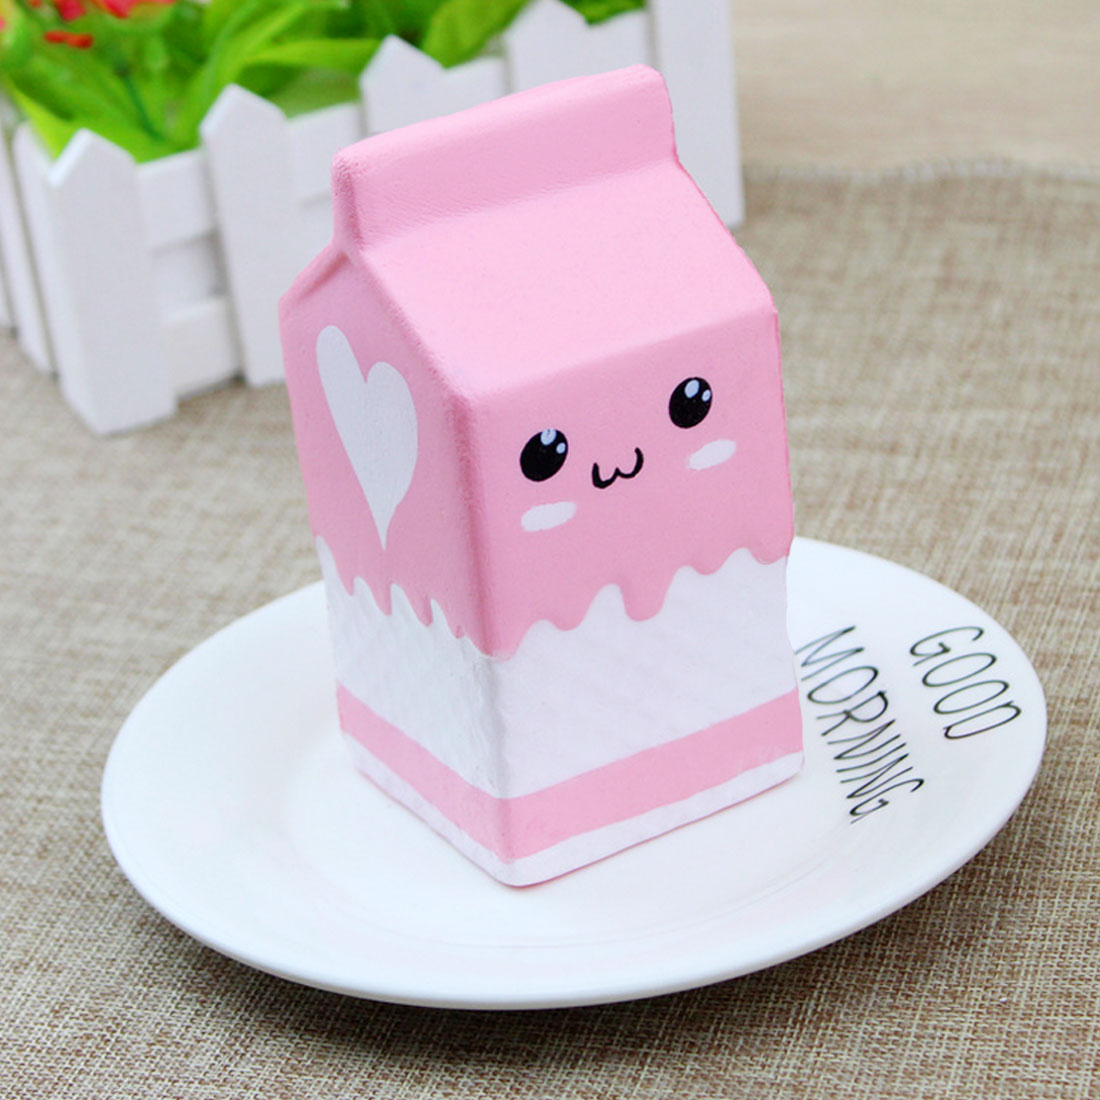 Kawaii Cute Soft Squishy Charms Milk Bag Toy Slow Rising Milk Box Kid Fun Gift For Adults Relieves Stress Anxiety Squeeze Toys Cellphones & Telecommunications